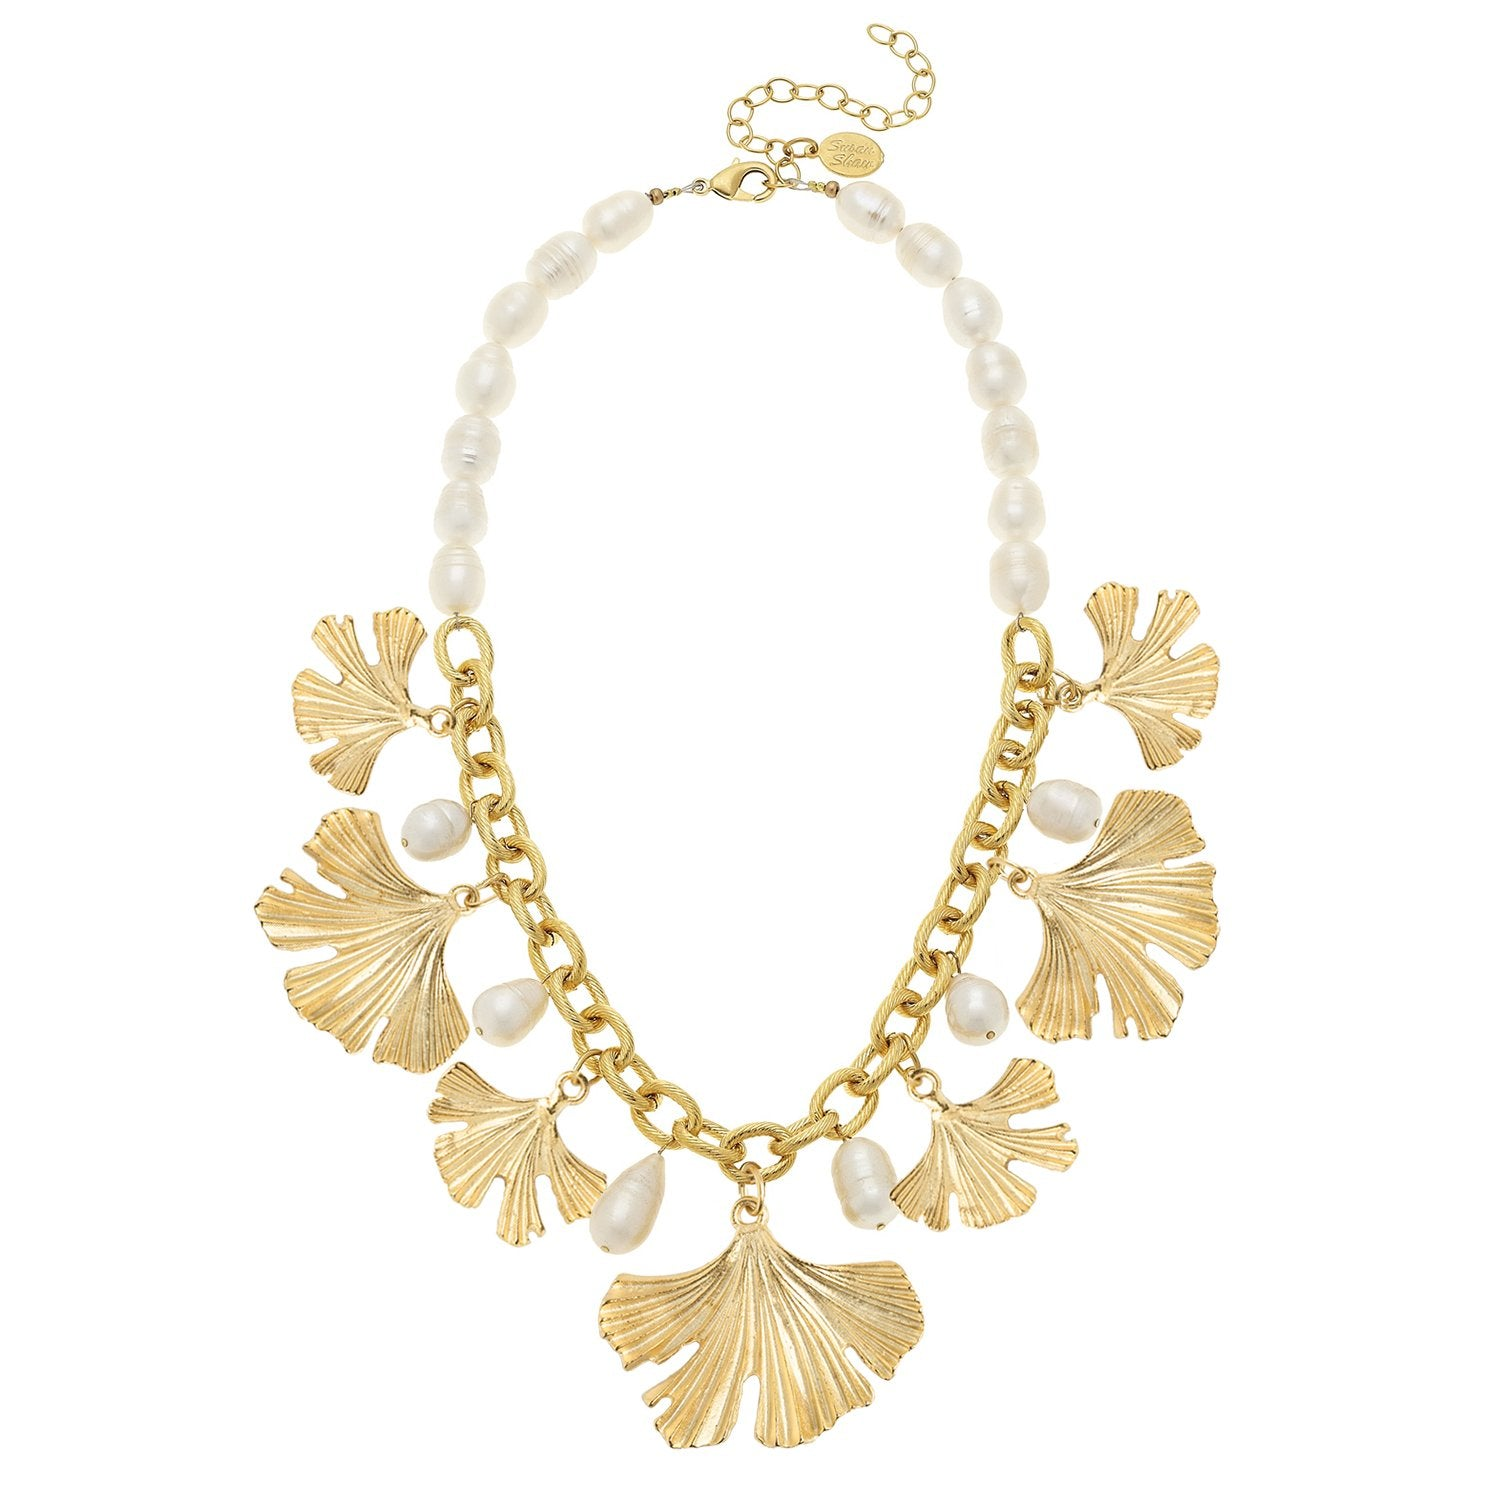 Pearl Ginkgo Necklace